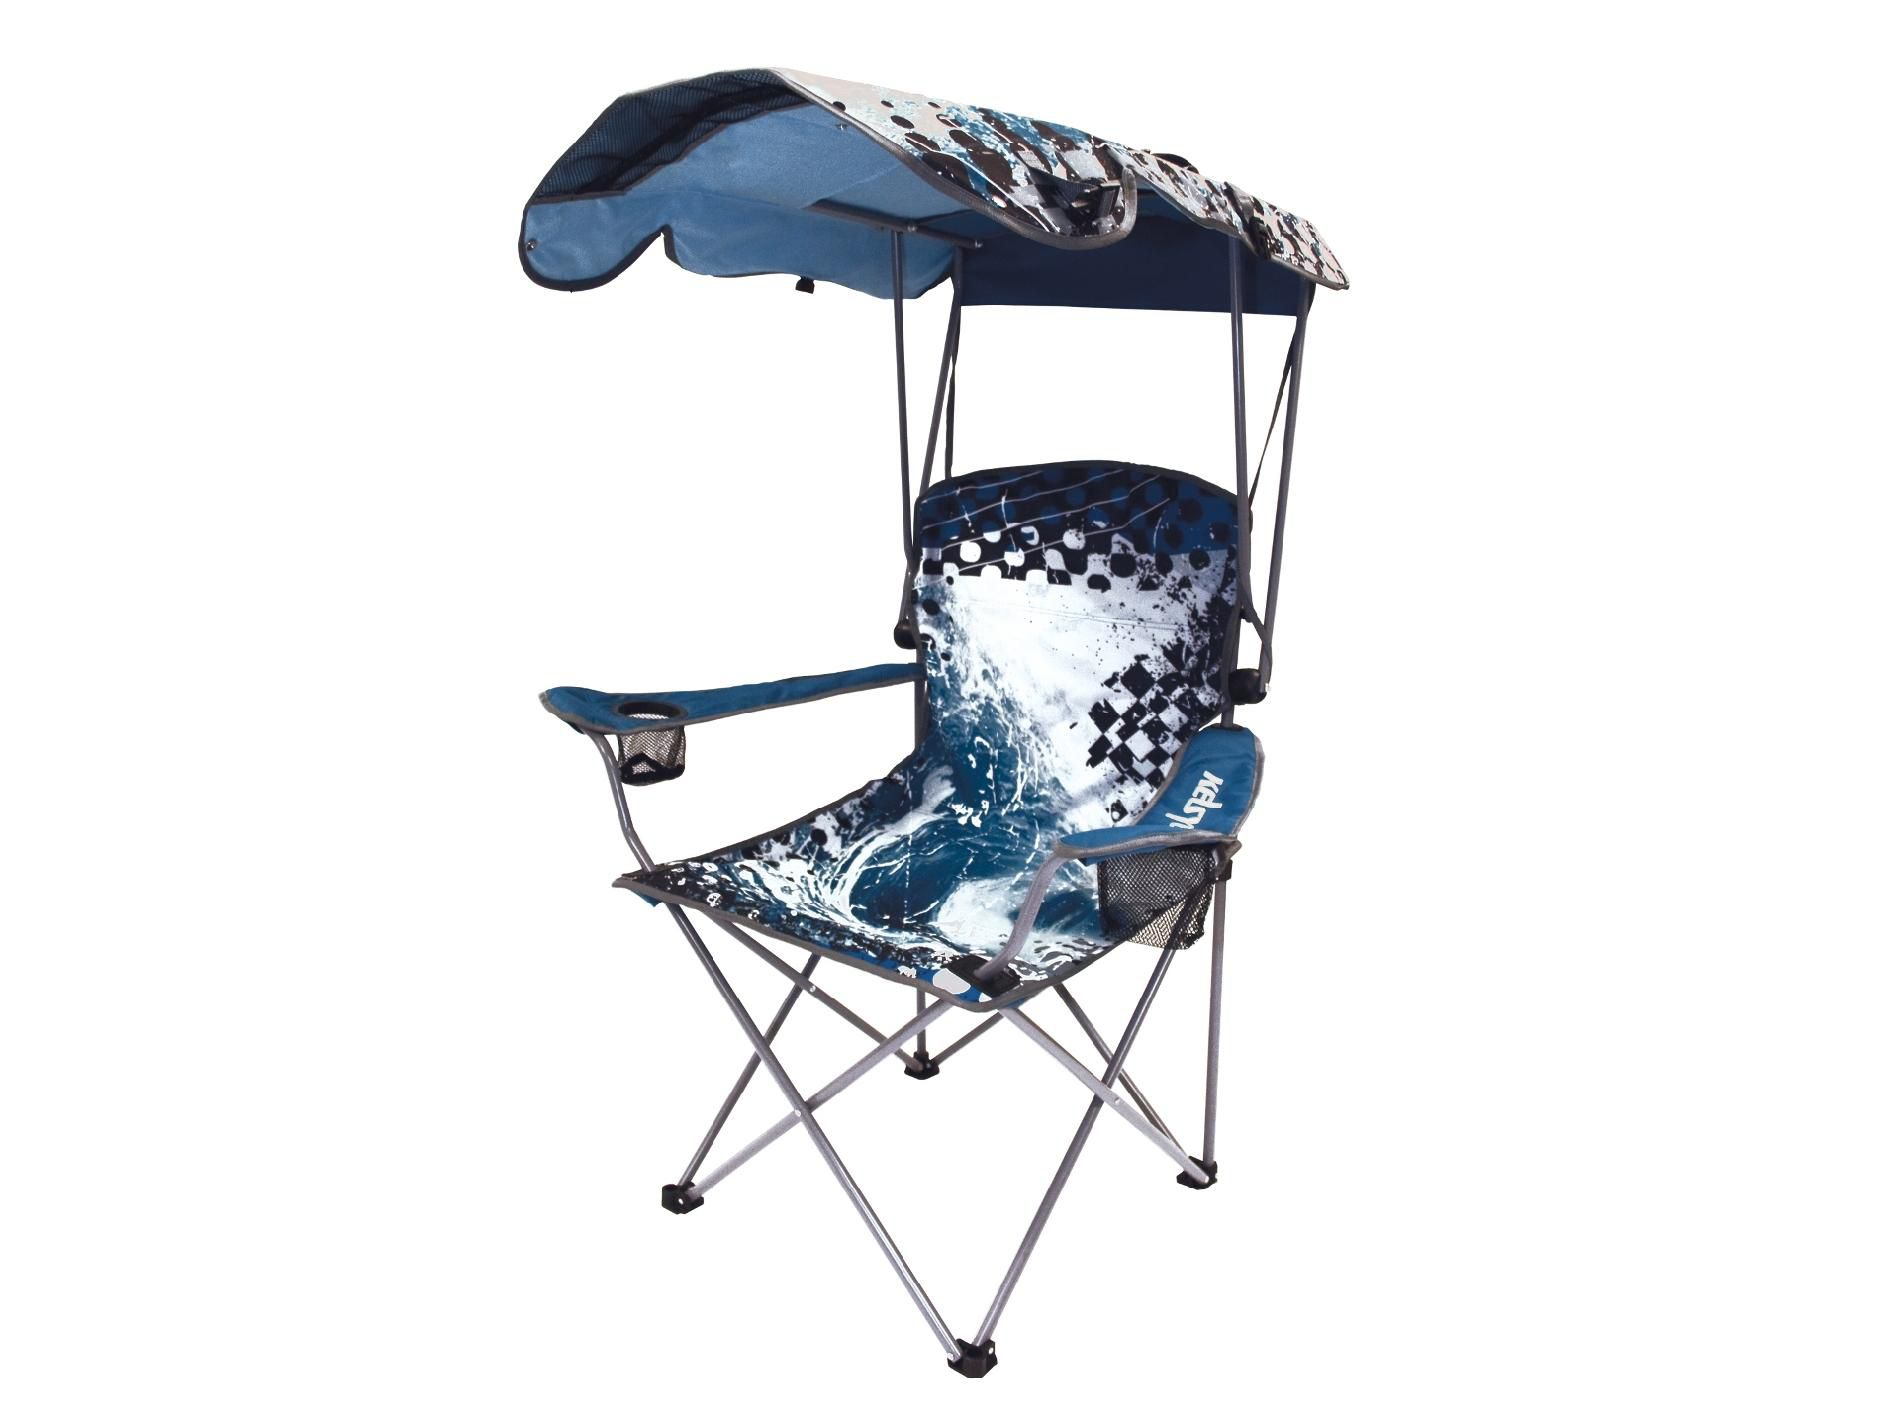 portable beach chair with umbrella gym total body workout 3-level resistance kelsyus canopy blue wave print fitness and sports